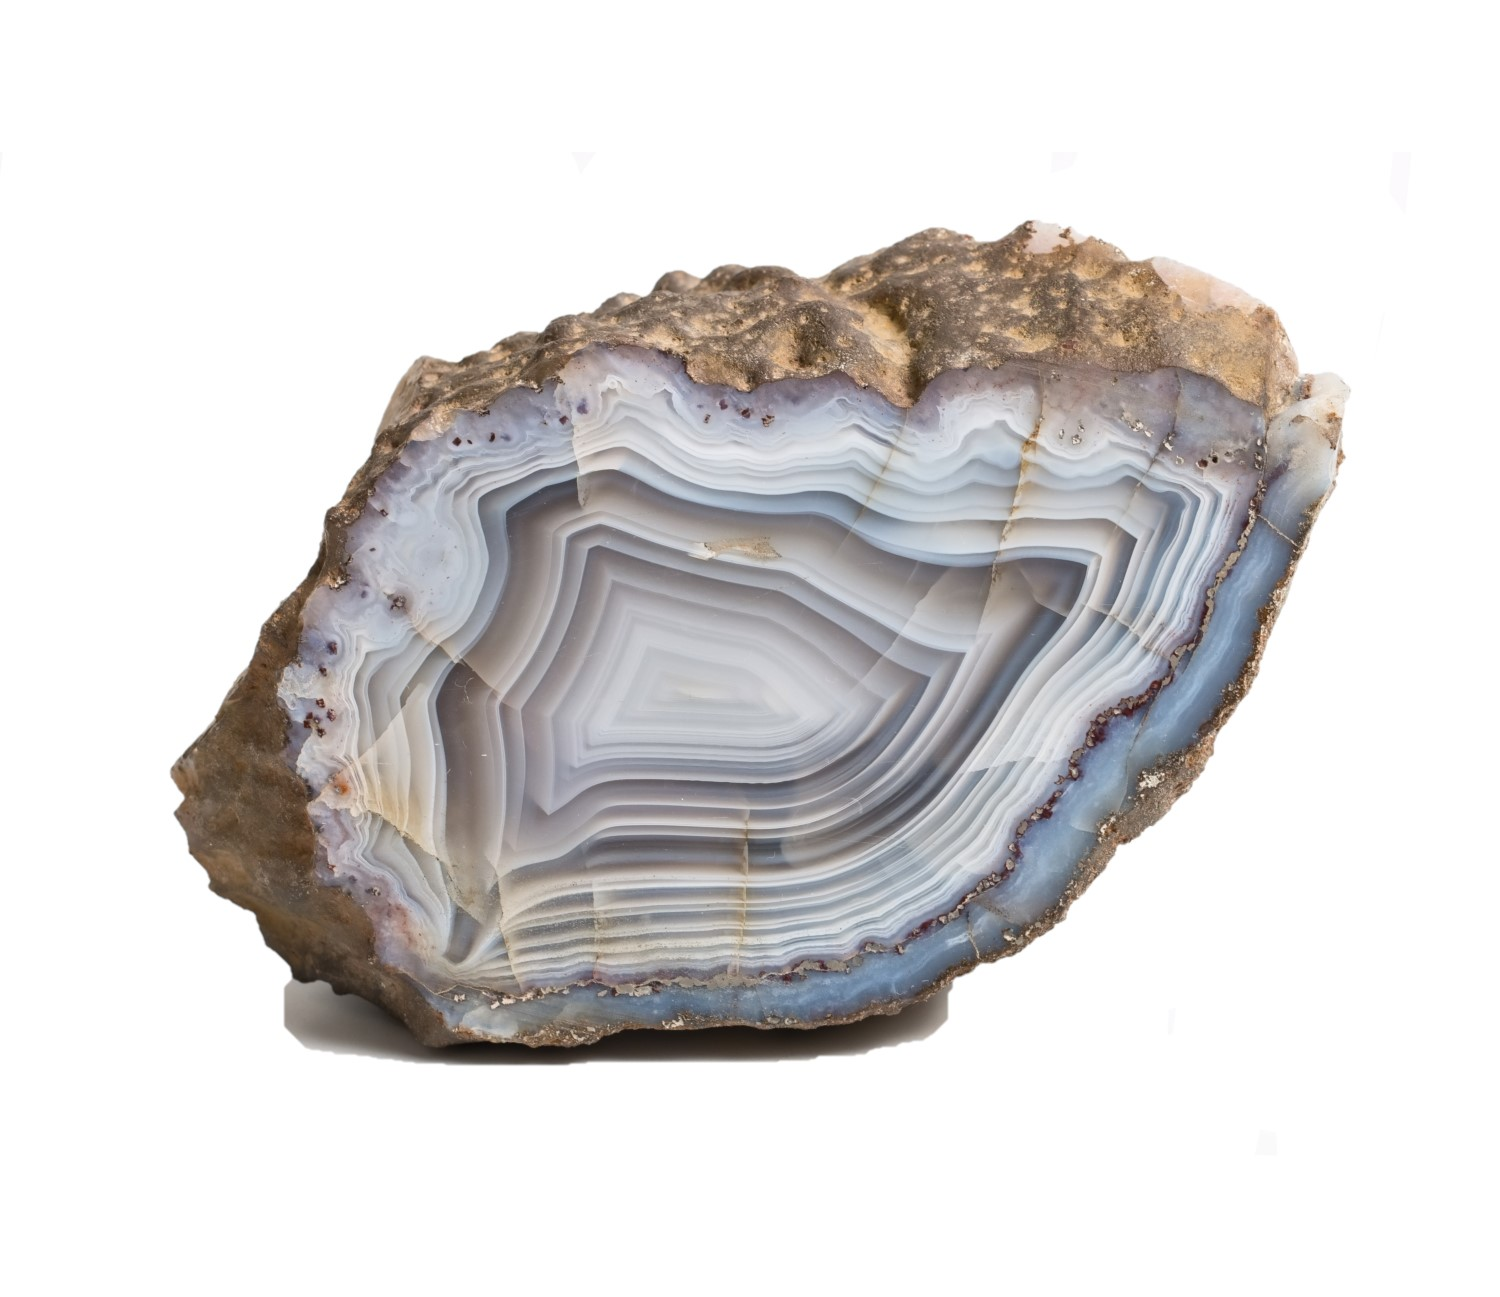 crystal banded agate stone gem ideal for Third Eye and Throat chakra healing rituals forthefeels 2